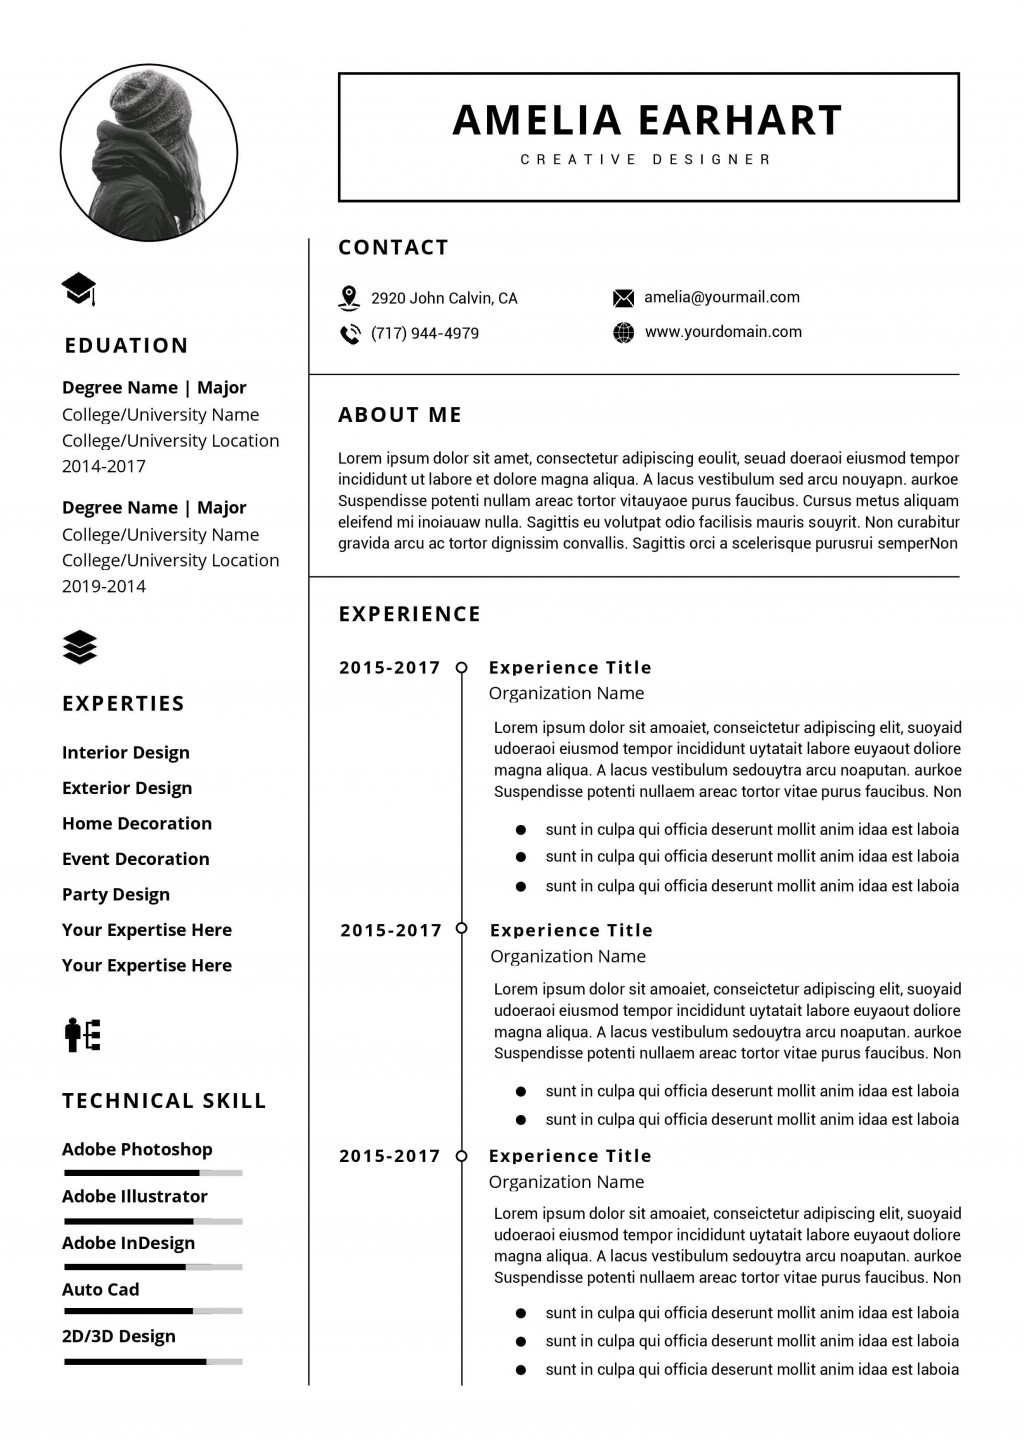 001 Impressive Professional Resume Template Word Picture  Microsoft Download Free 2010 2019Large